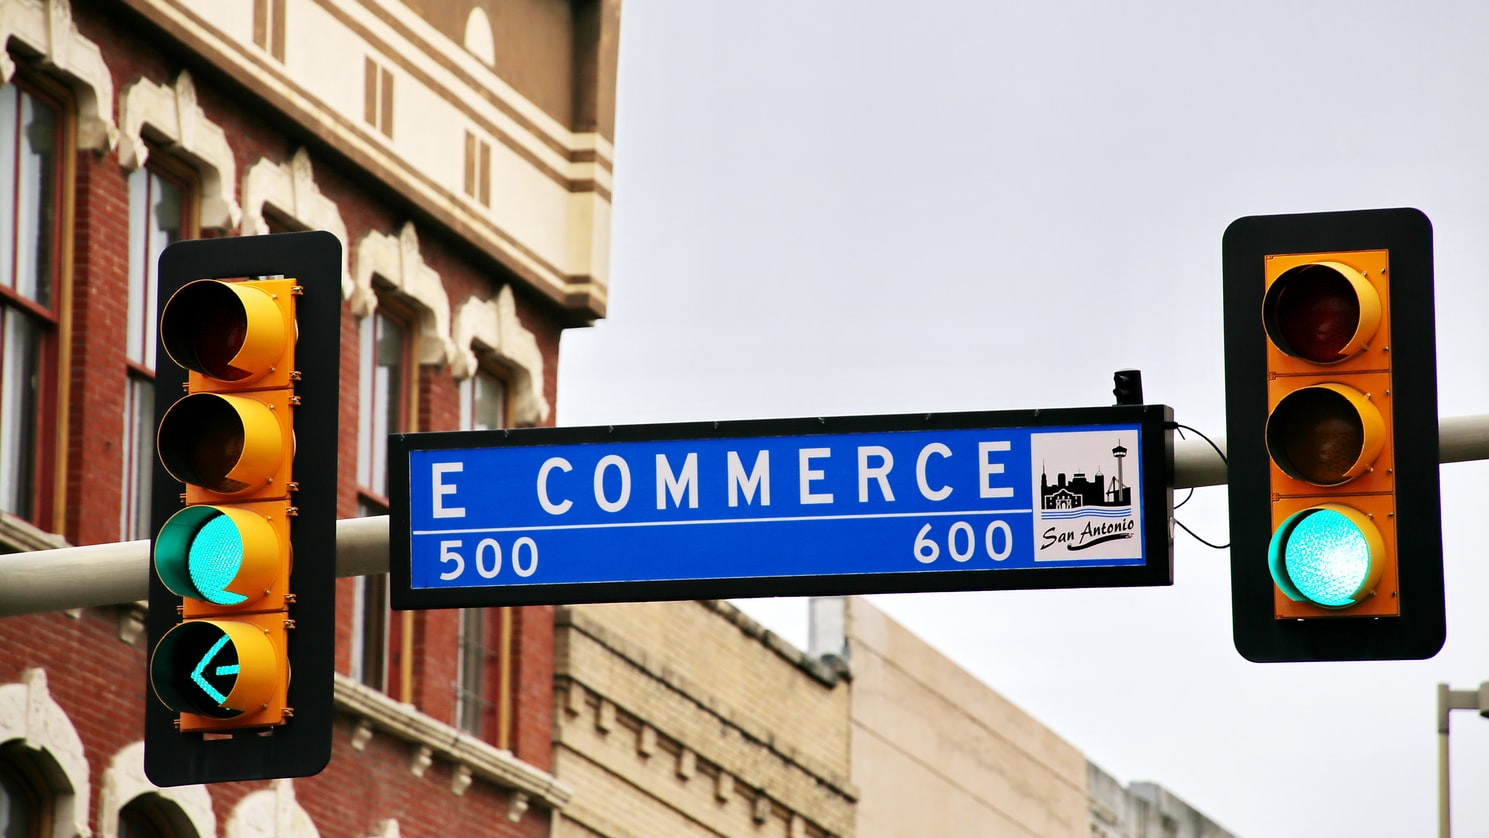 obtaining ecommerce business license in the US